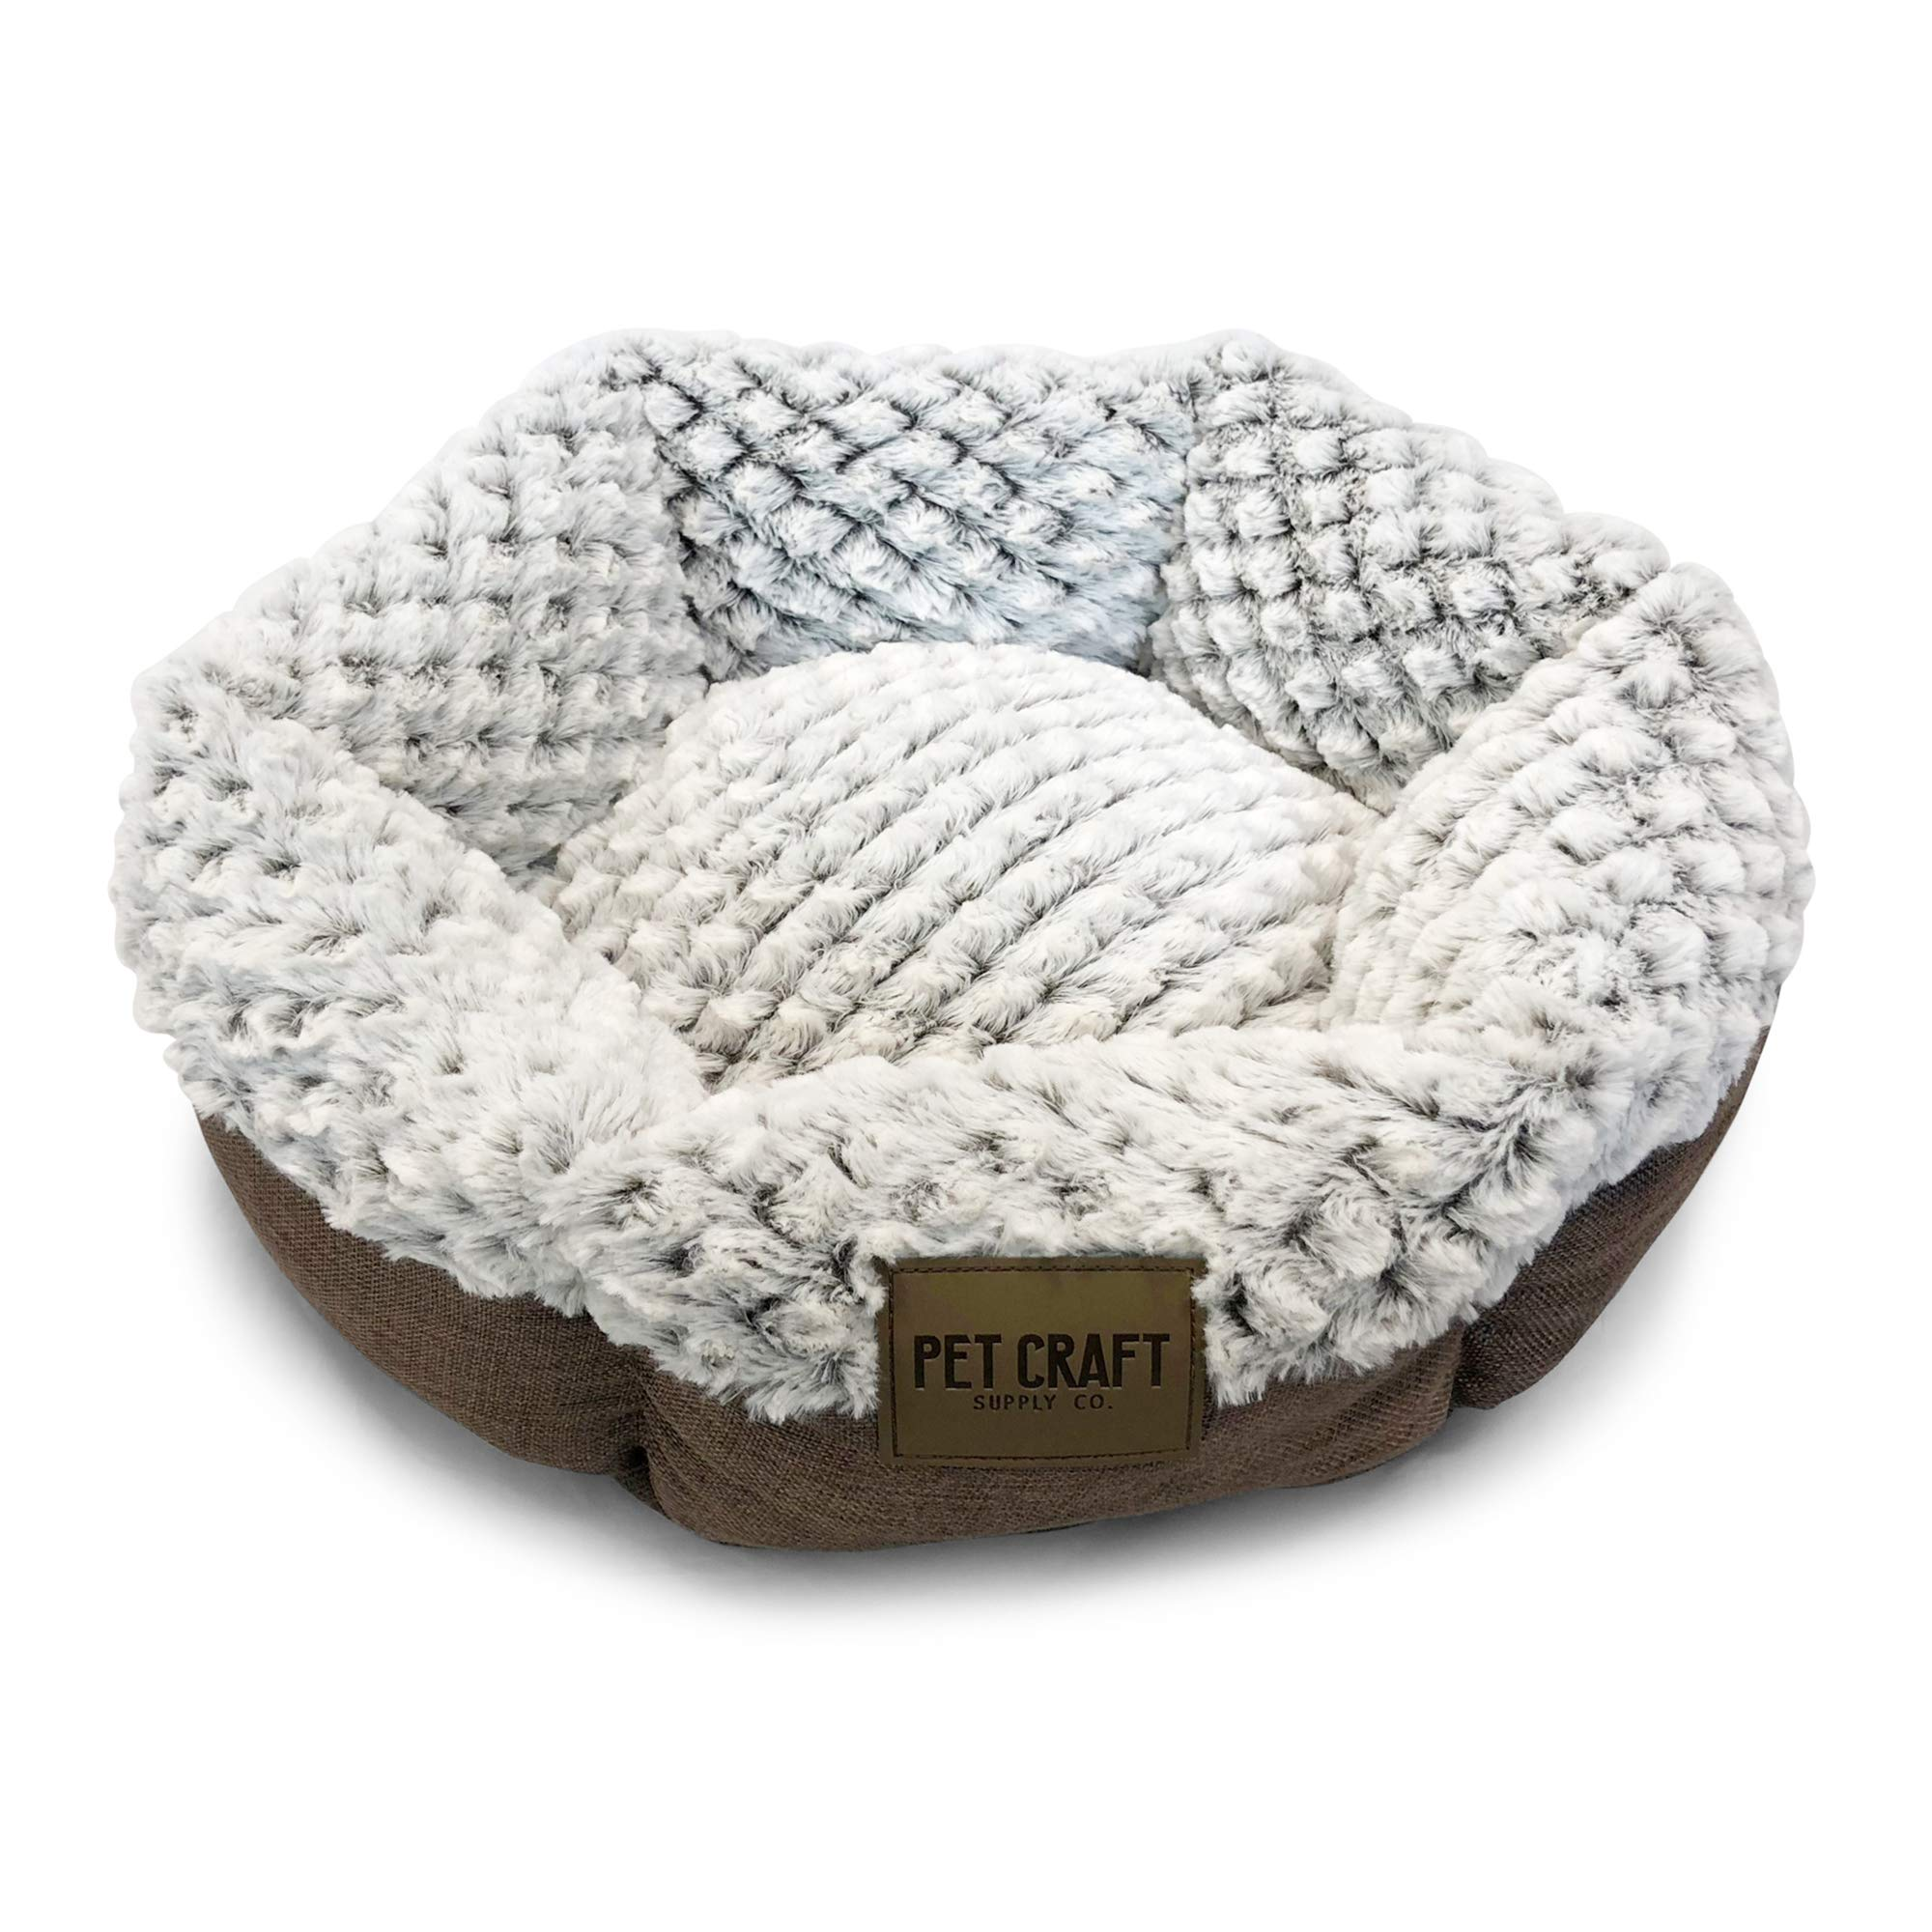 Pet Craft Supply Co. Round Machine Washable Memory Foam Comfortable Ultra Soft All Season Self Warming Cat & Dog Bed by Pet Craft Supply